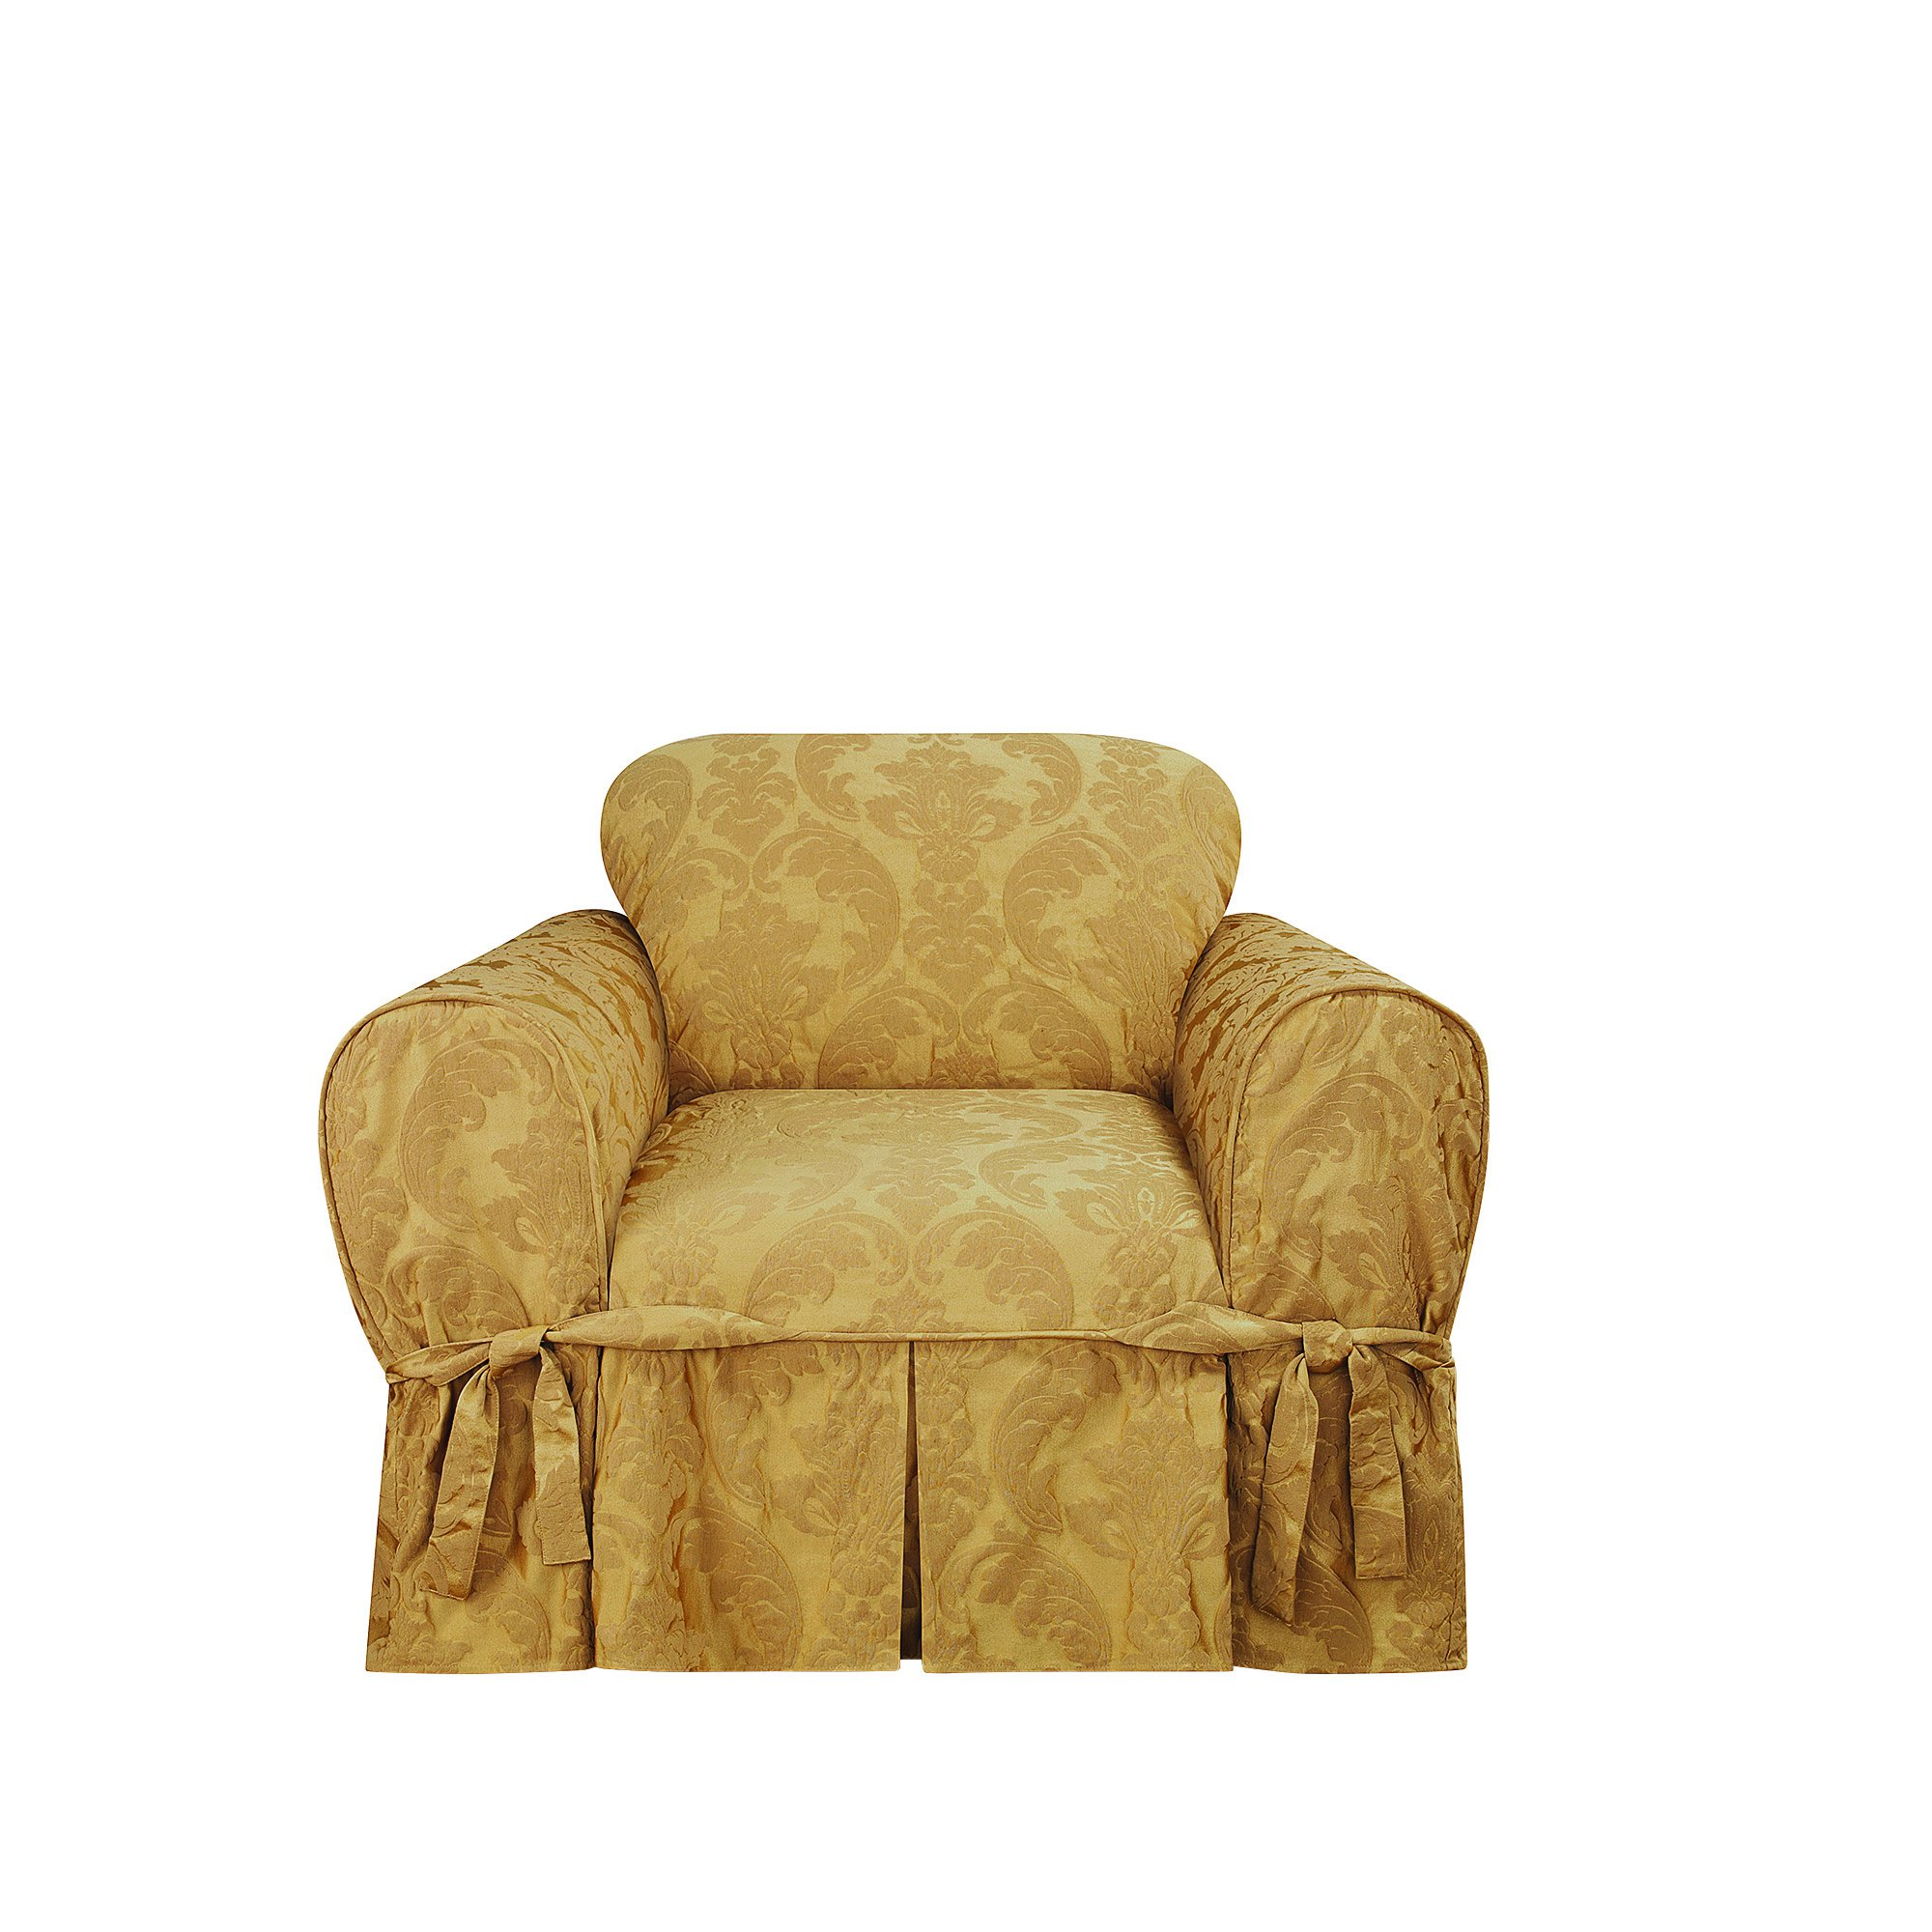 Sure Fit Matelasse Damask One Piece Chair Slipcover - Gold by Surefit (Image #1)